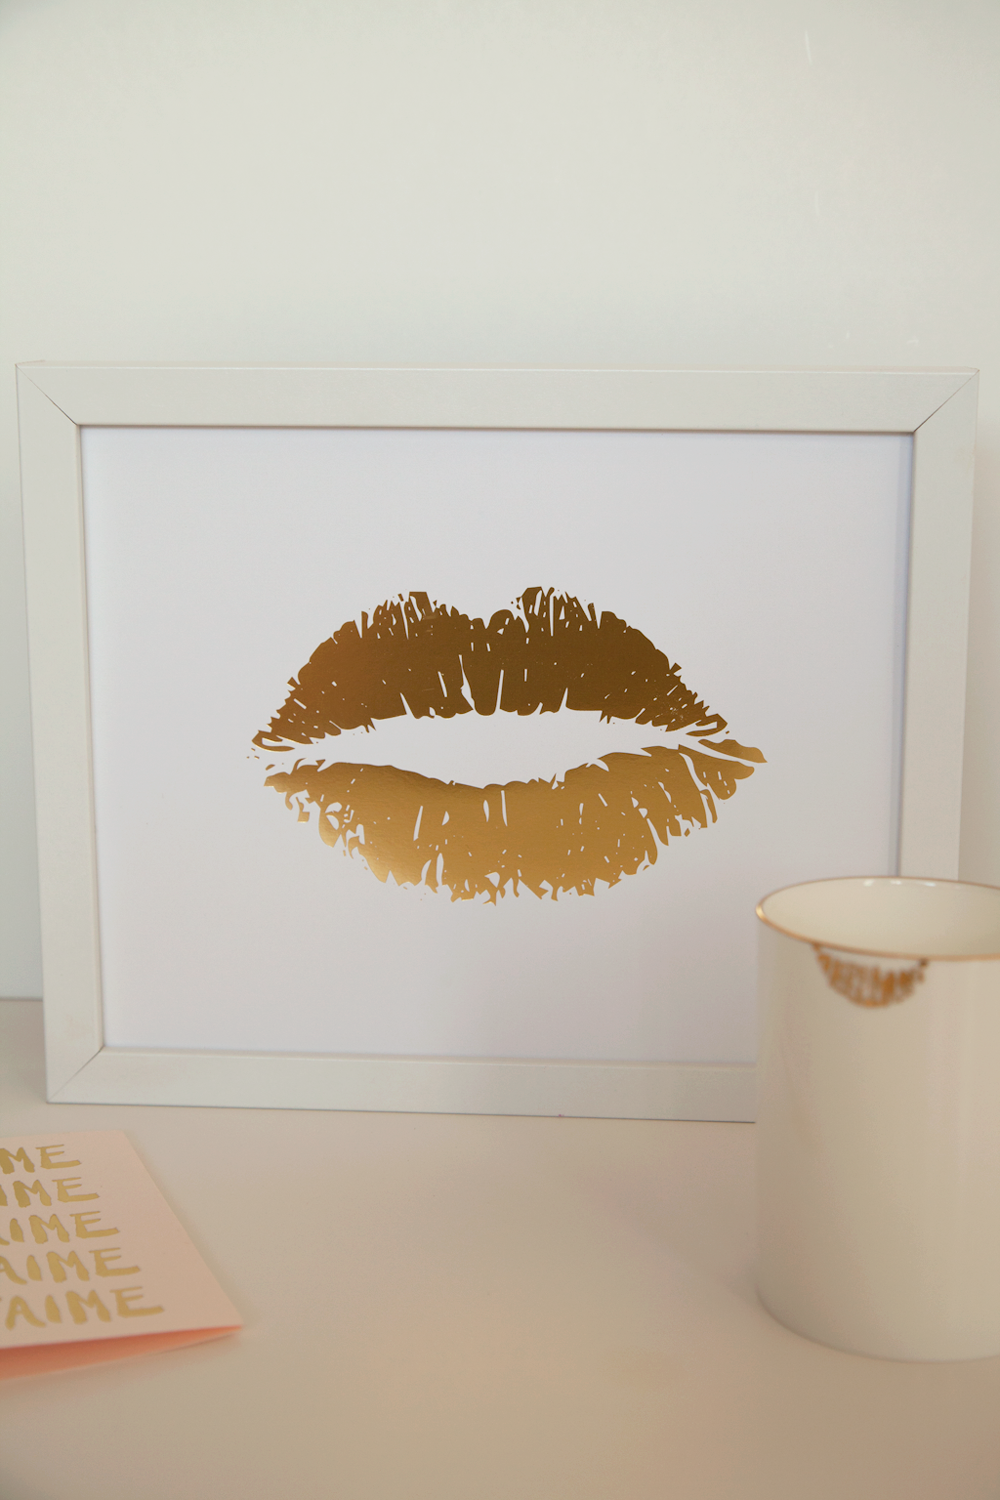 Lippy lippy gold foil lip print 8x10 home decor by tarynstmichele lippy lippy gold foil lip print home decor letterpress wall art valentines day gallery wall amipublicfo Gallery